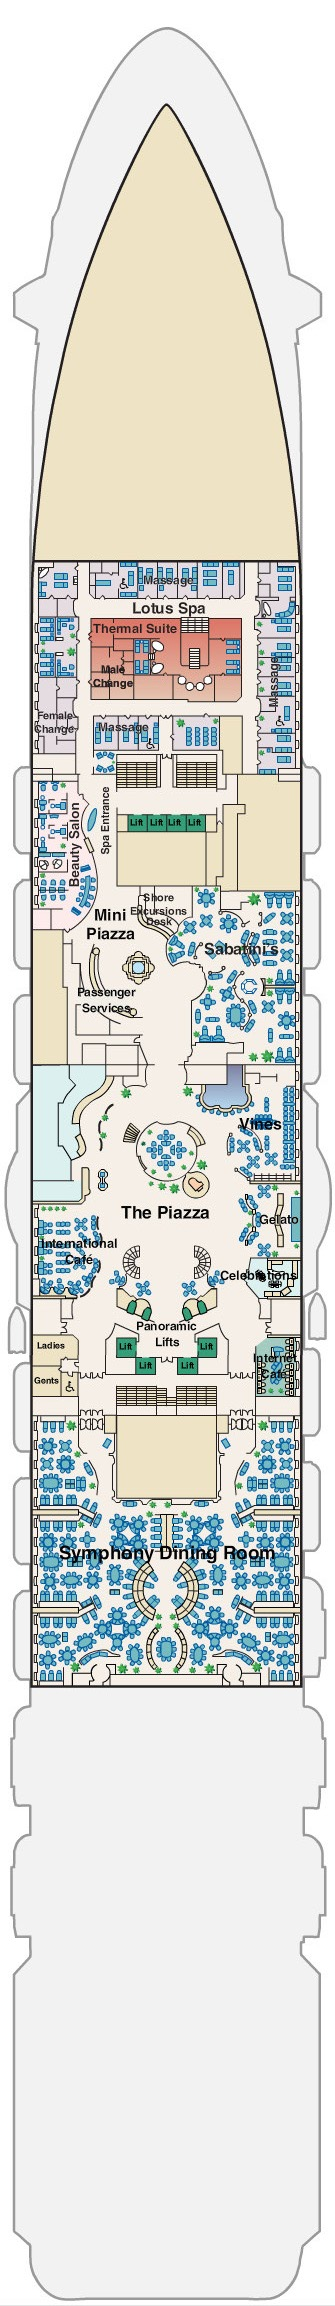 Royal Princess Deck 5 - Plaza layout